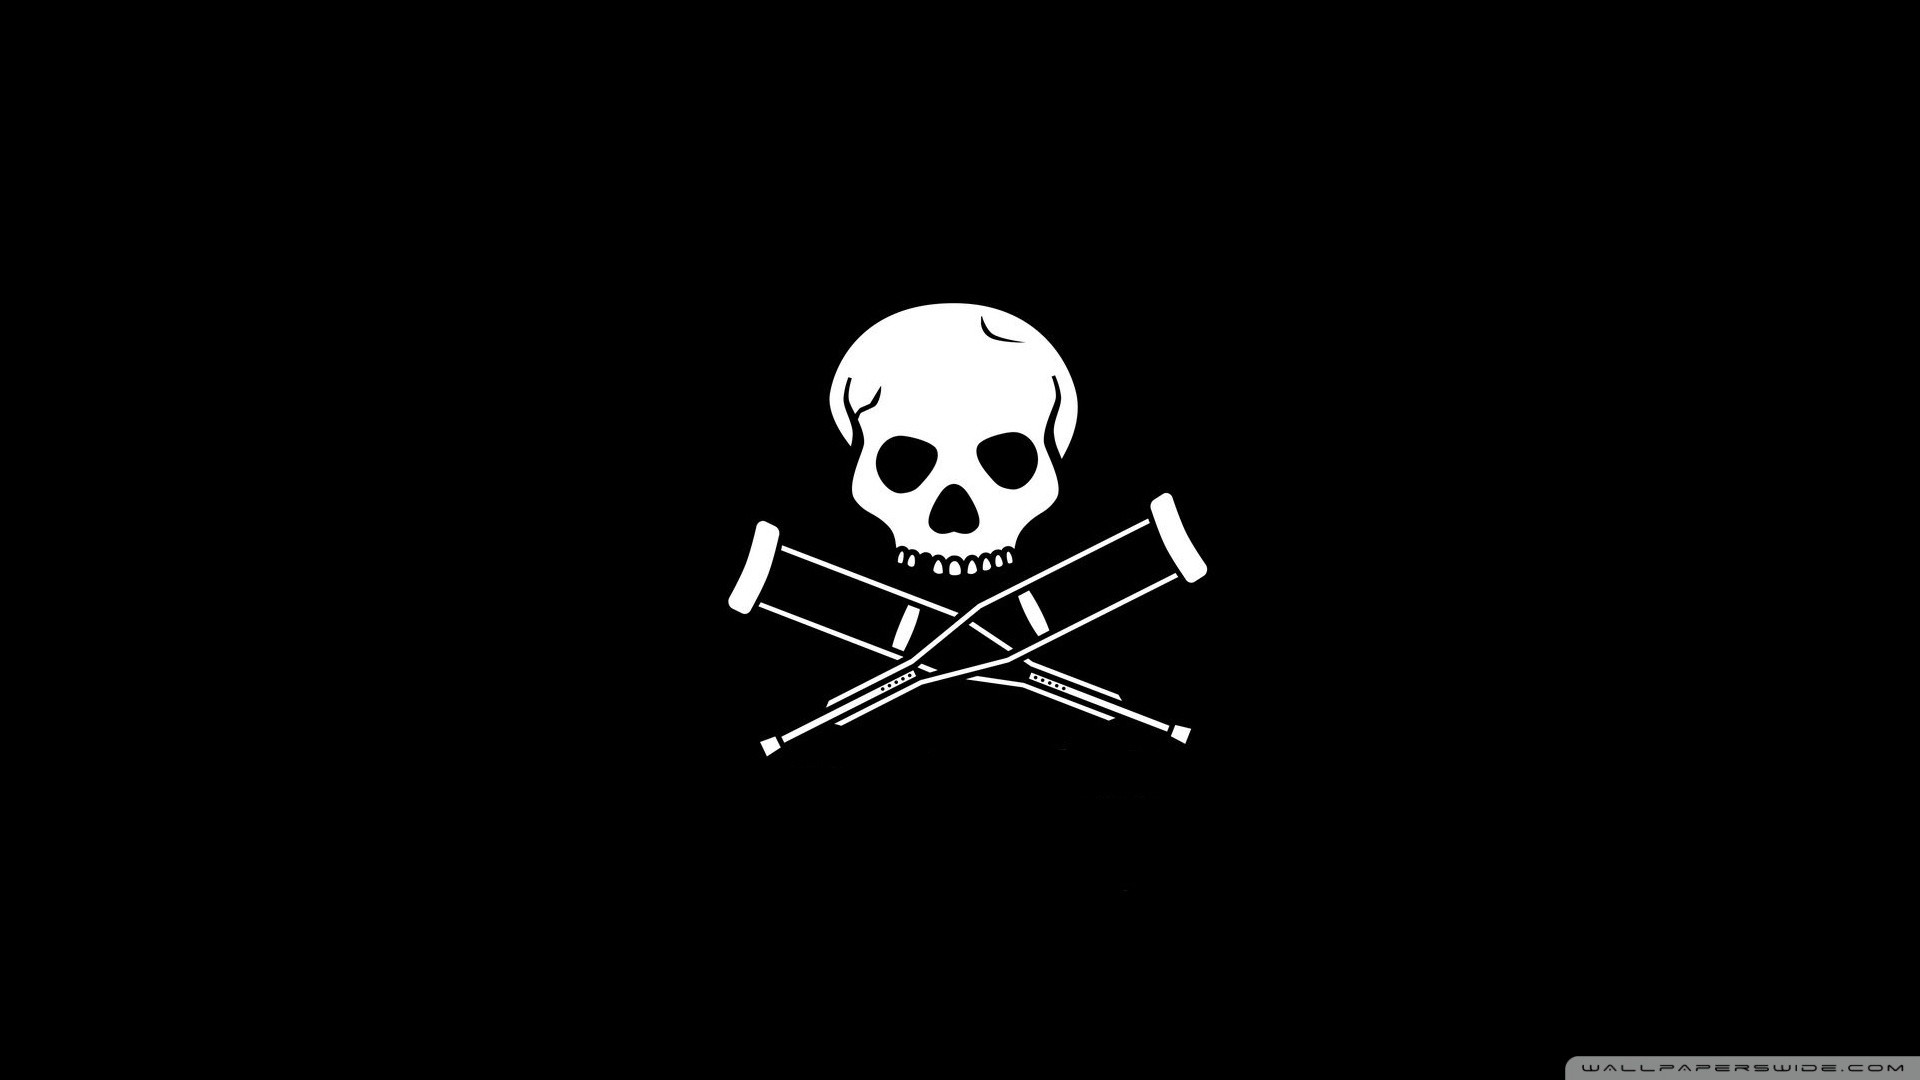 1920x1080 HD Skull Wallpapers HD, Desktop Backgrounds 2048x1152, Images and .